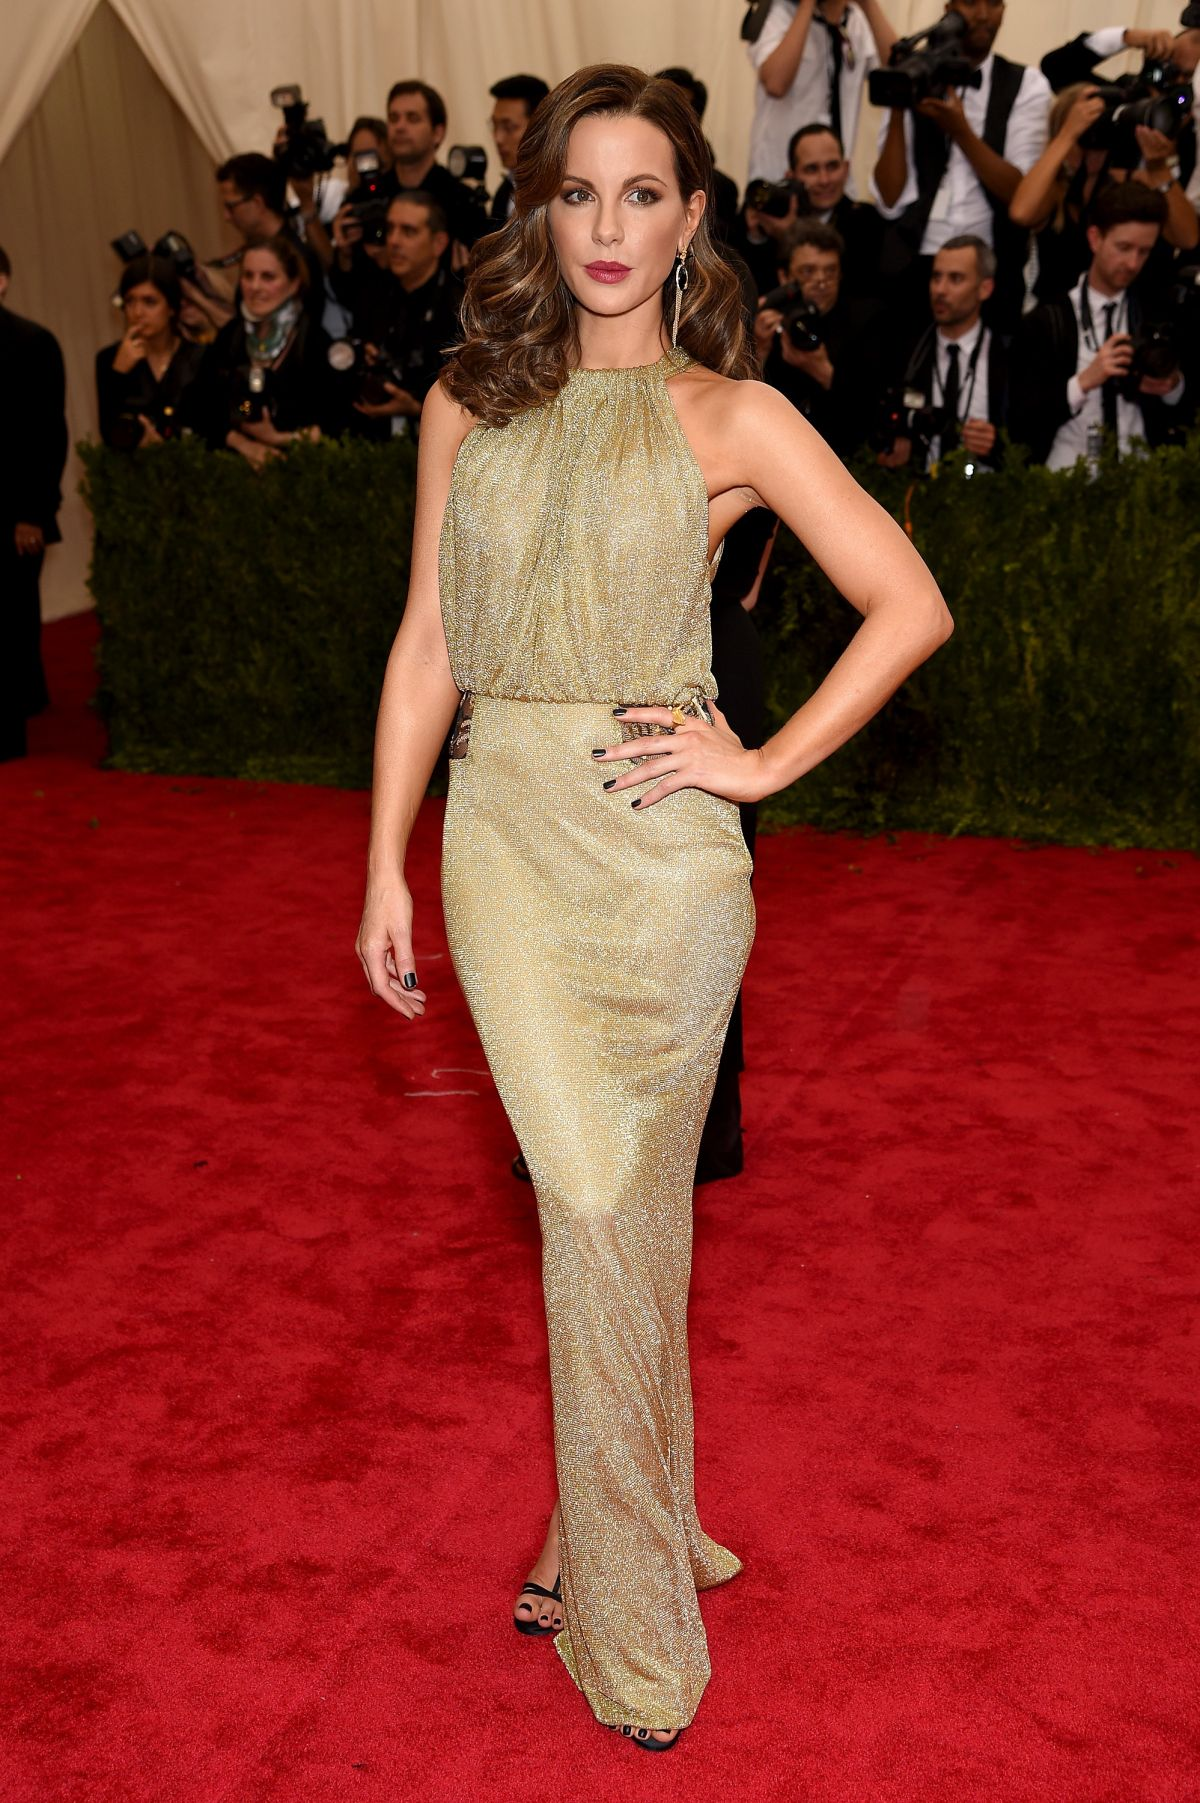 KATE BECKINSALE MET Gala 2015 in New York